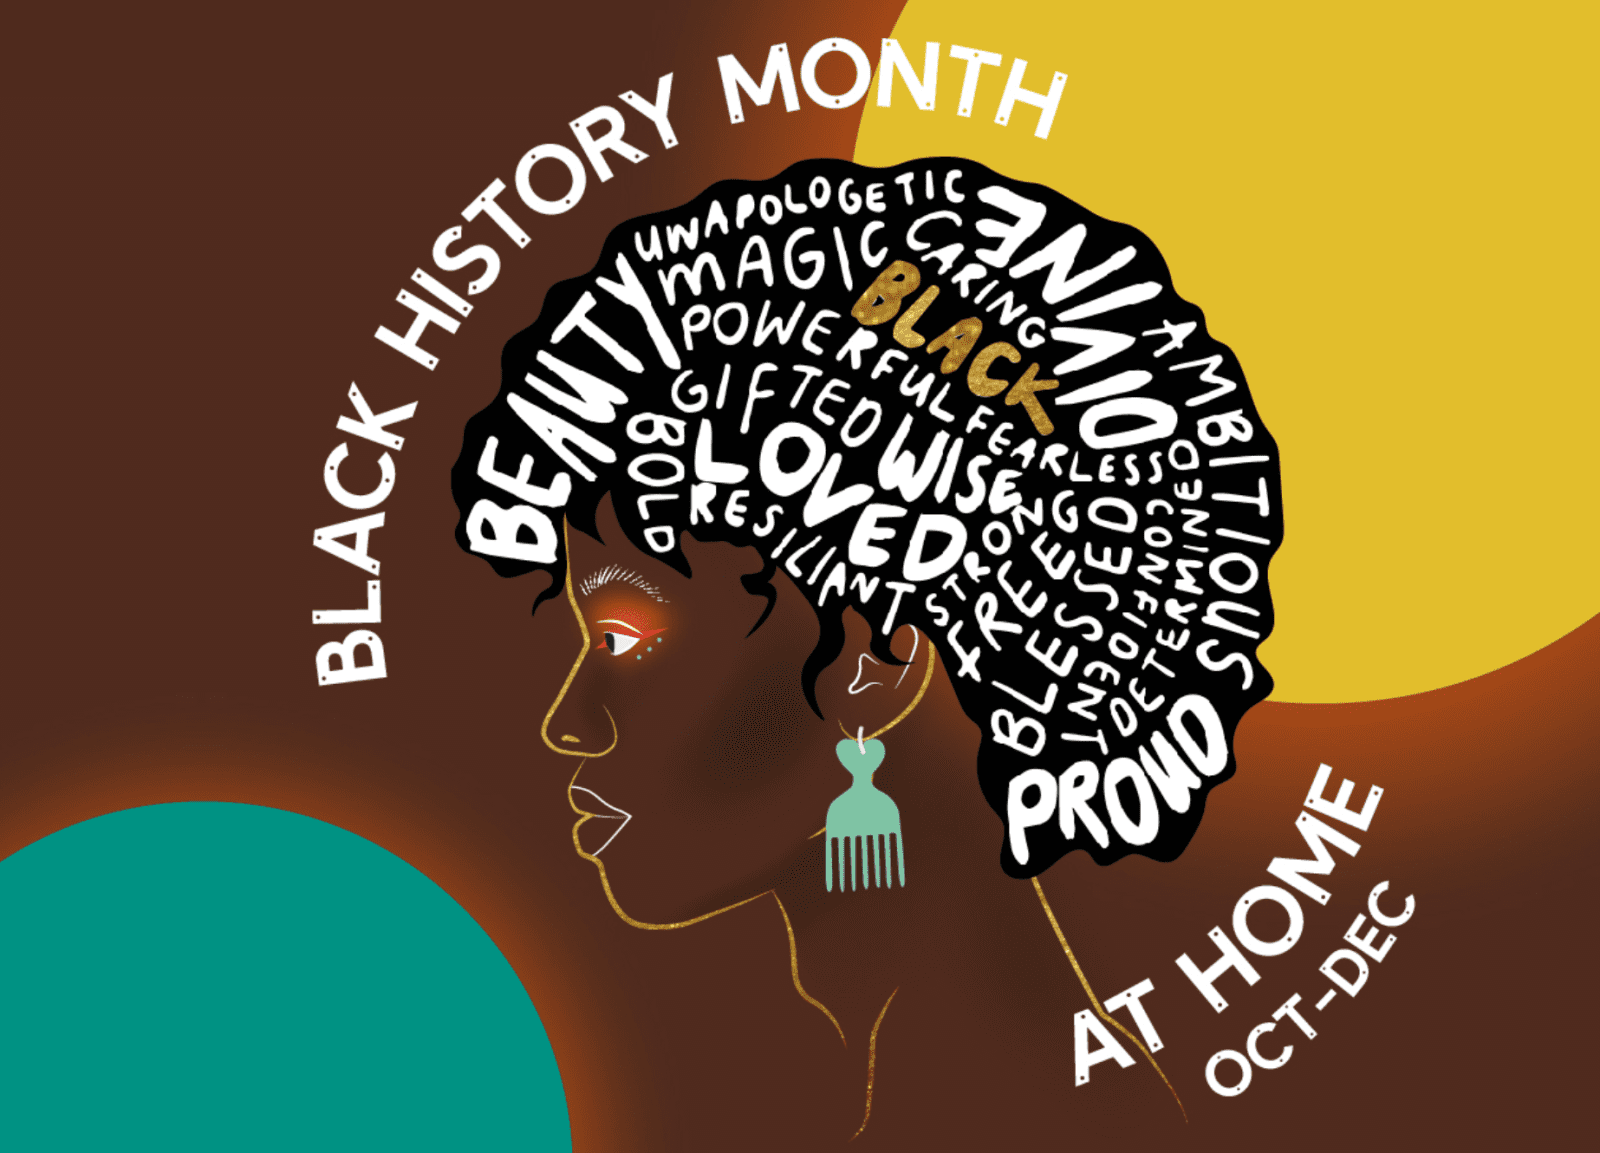 10 things happening to celebrate Black History Month in Greater Manchester, The Manc